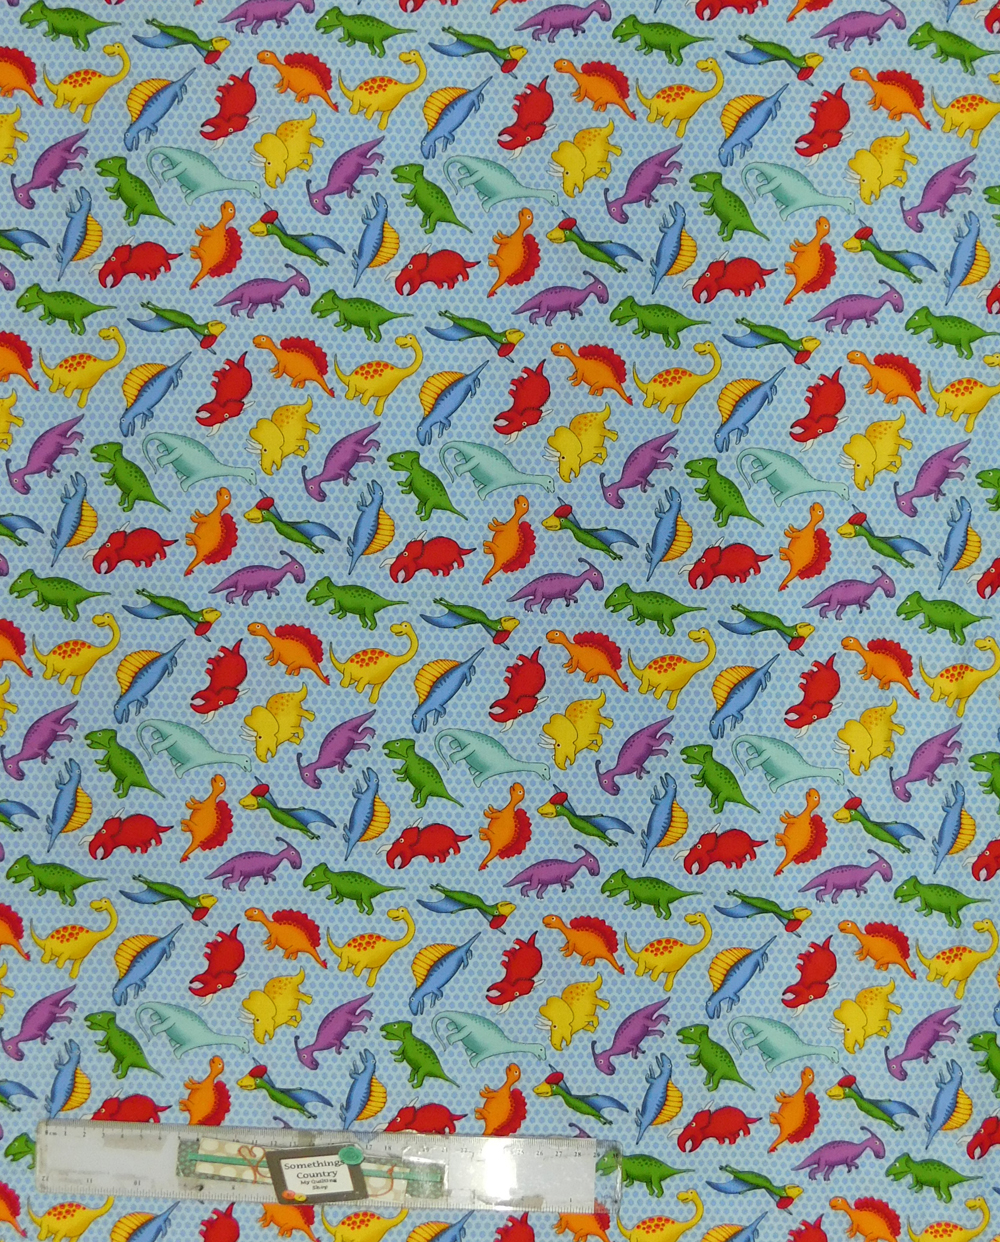 Quilting Patchwork Sewing Fabric DINOSAURS ON BLUE Cotton Material 50x55cm FQ NEW